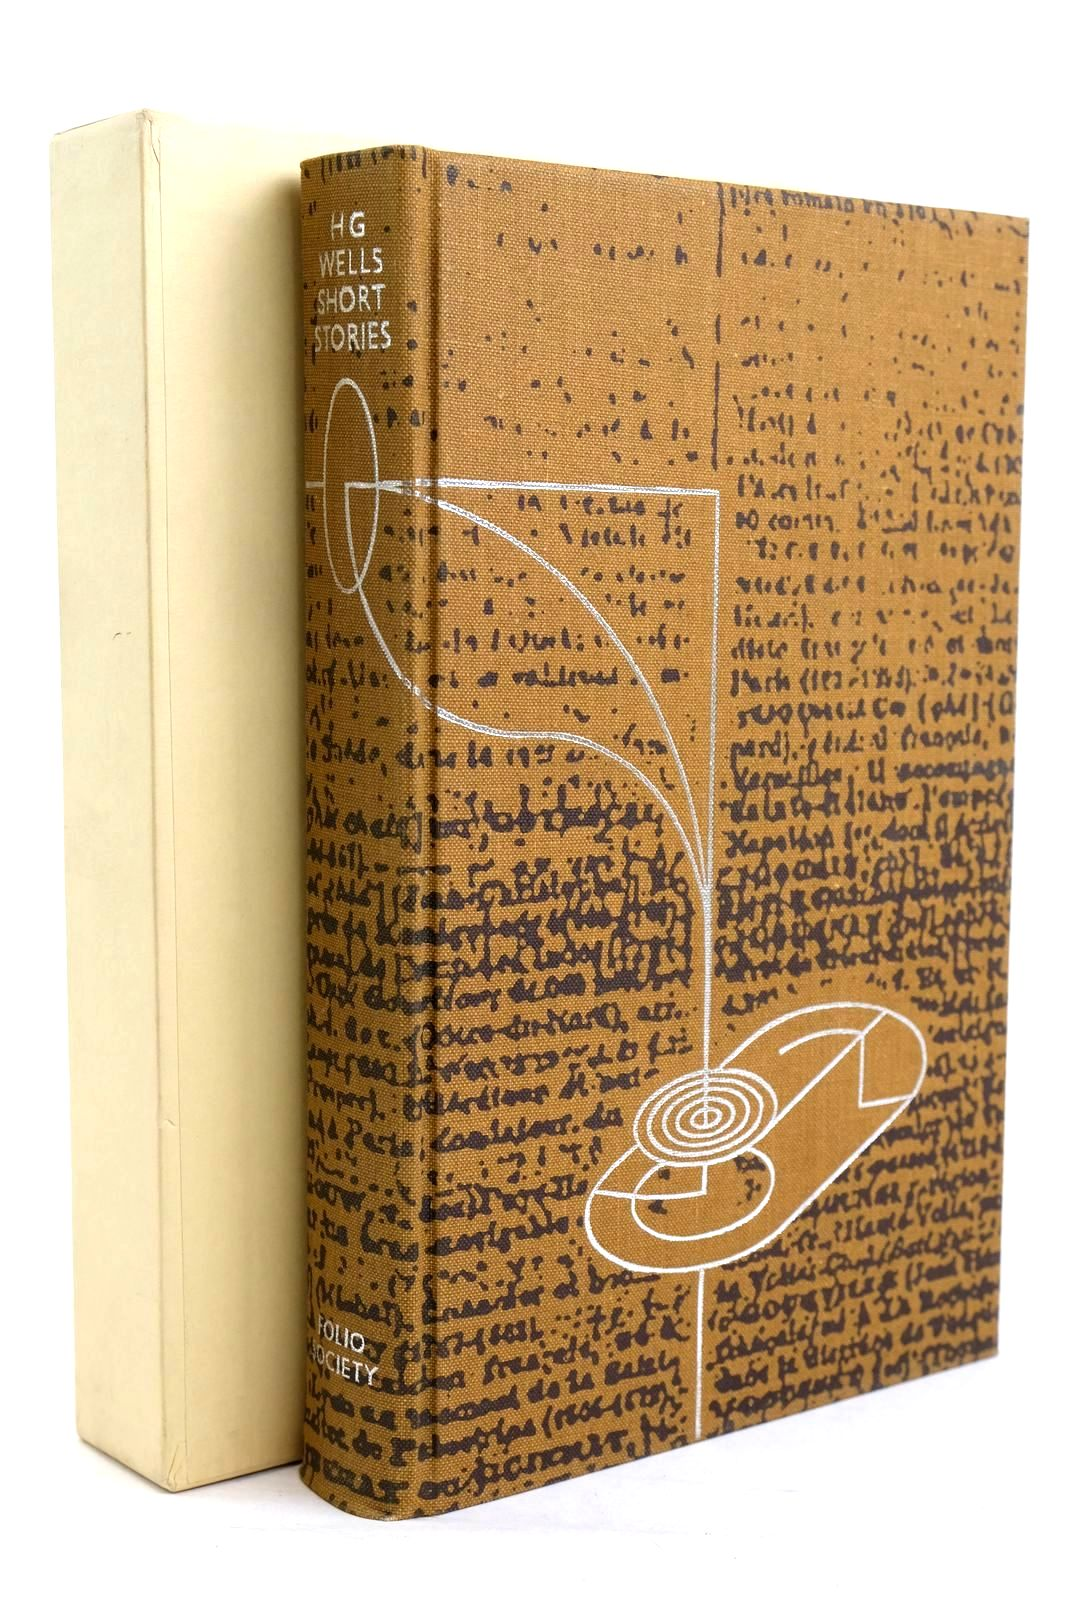 Photo of SHORT STORIES written by Wells, H.G. Heald, Tim illustrated by Hitchen, Jonathan published by Folio Society (STOCK CODE: 1320509)  for sale by Stella & Rose's Books